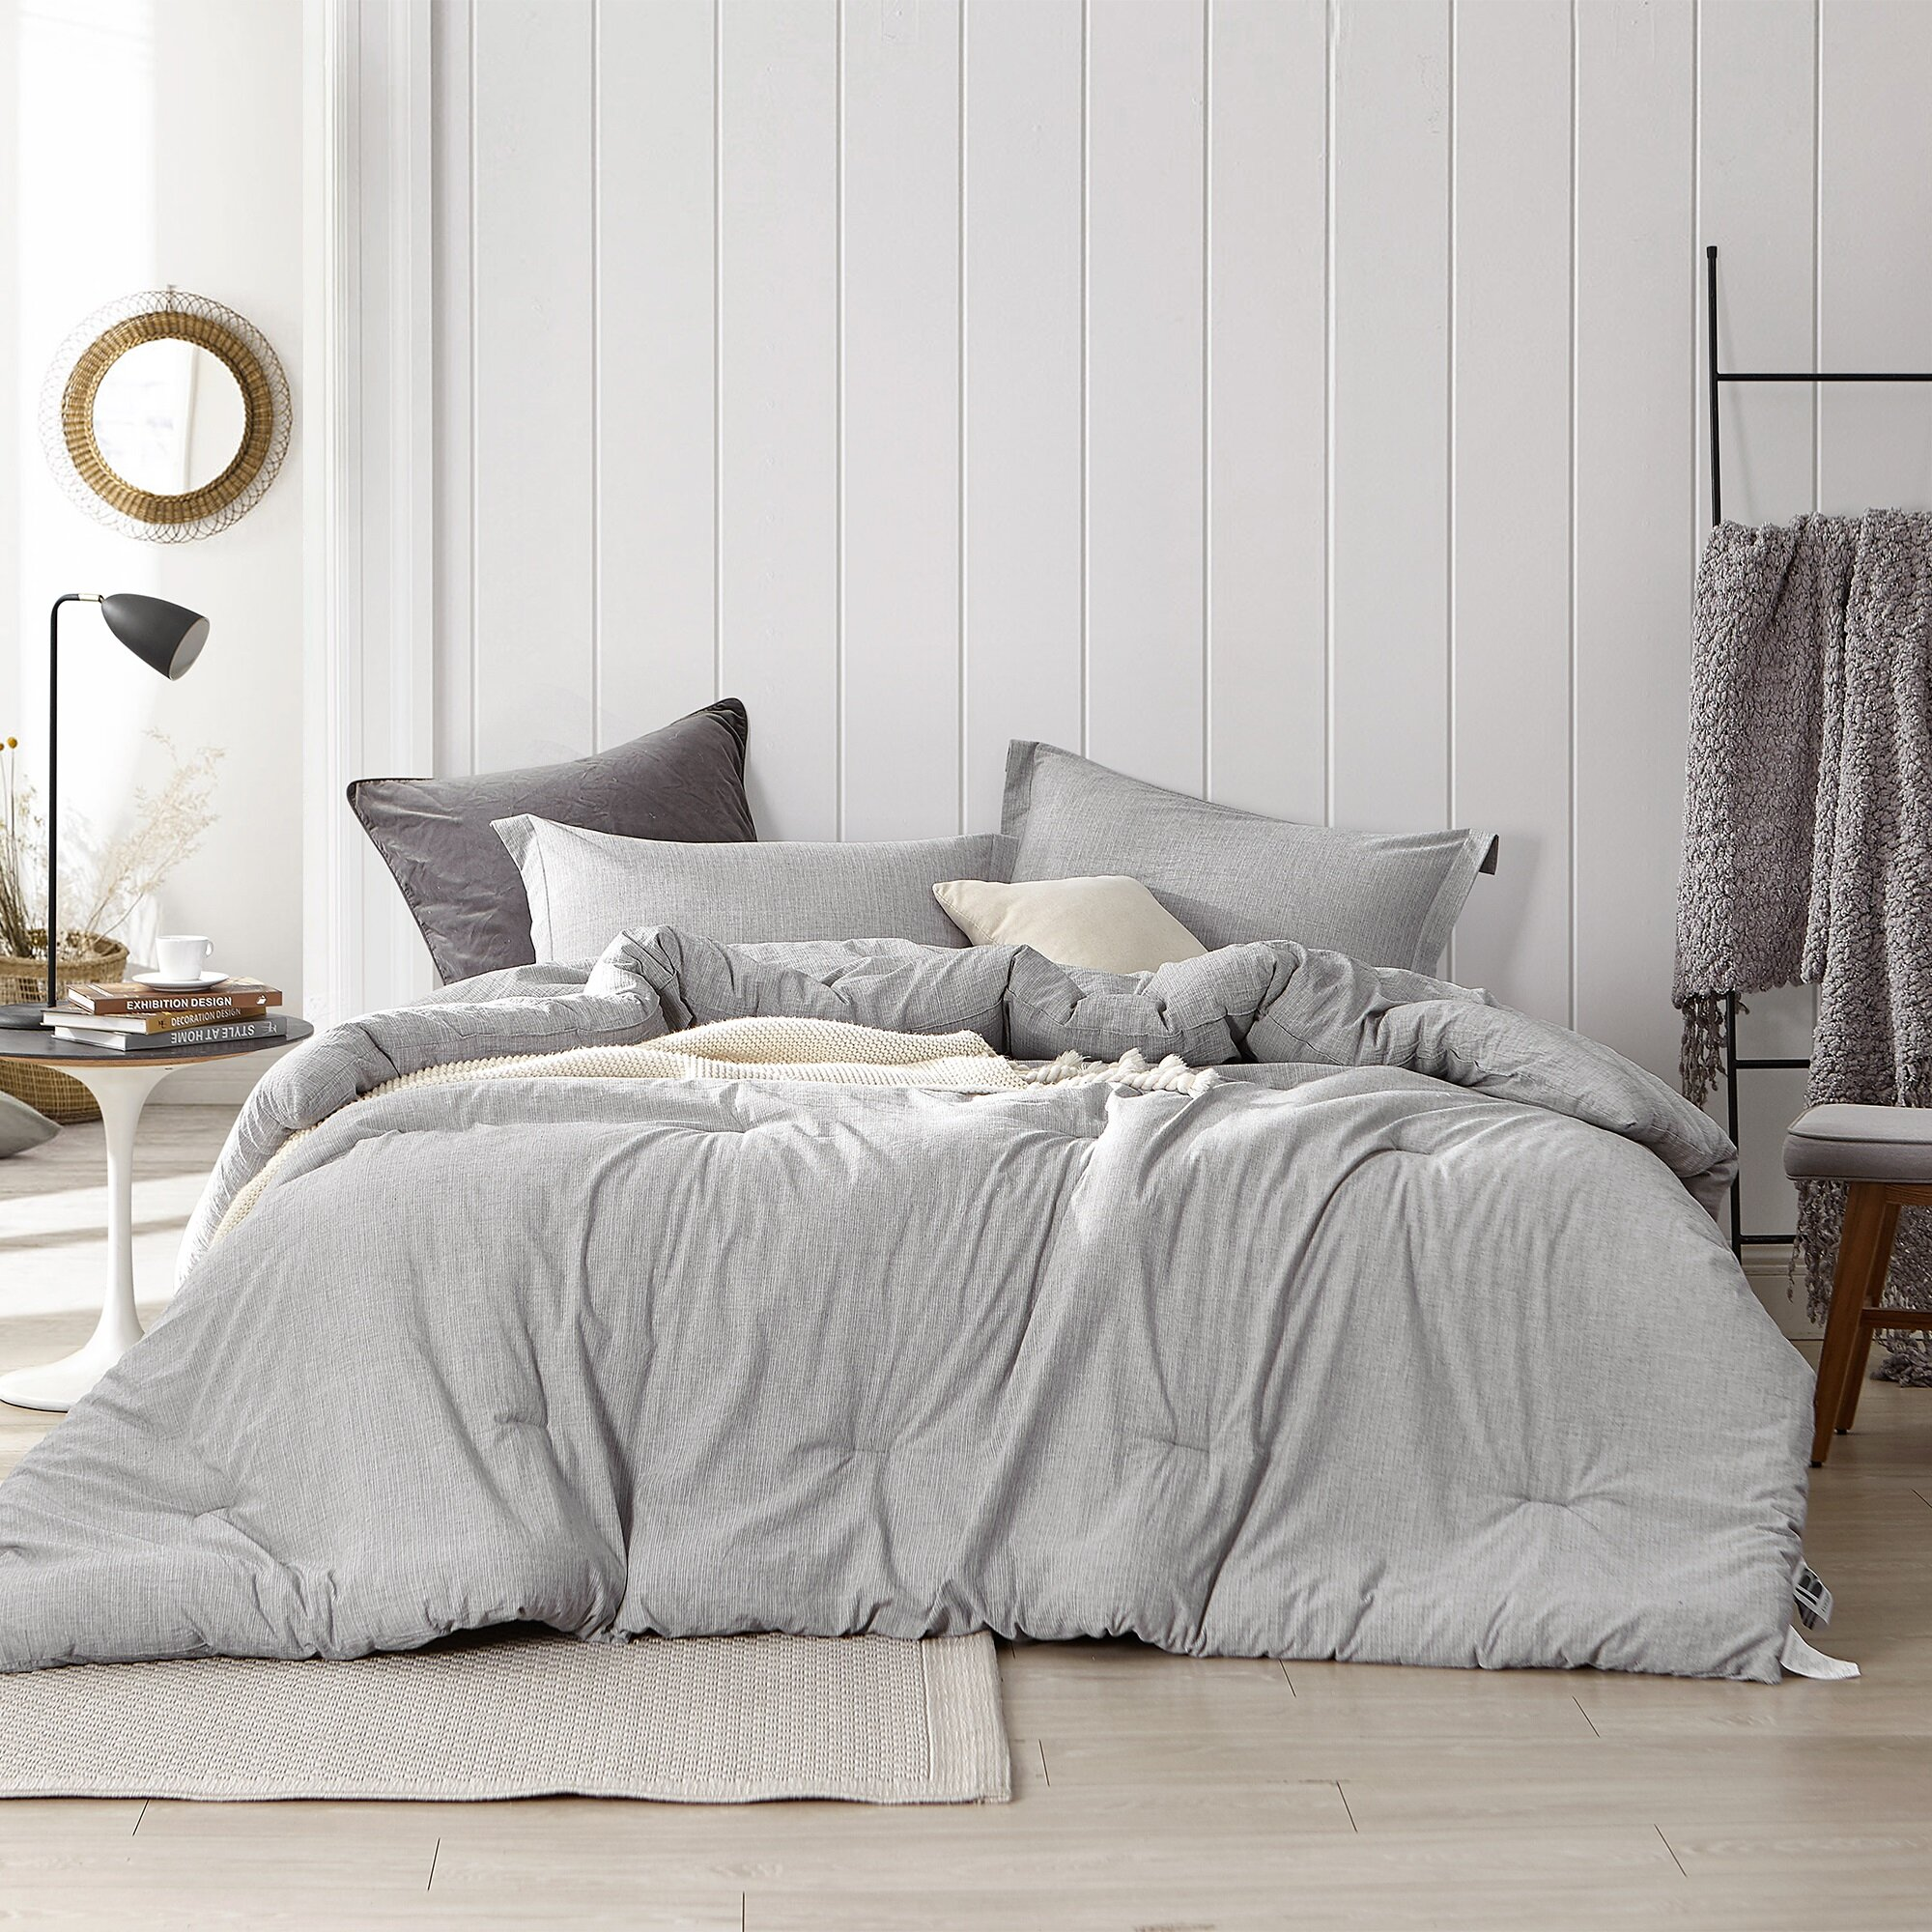 100 Cotton Modern Farmhouse Comforters Sets You Ll Love In 2021 Wayfair